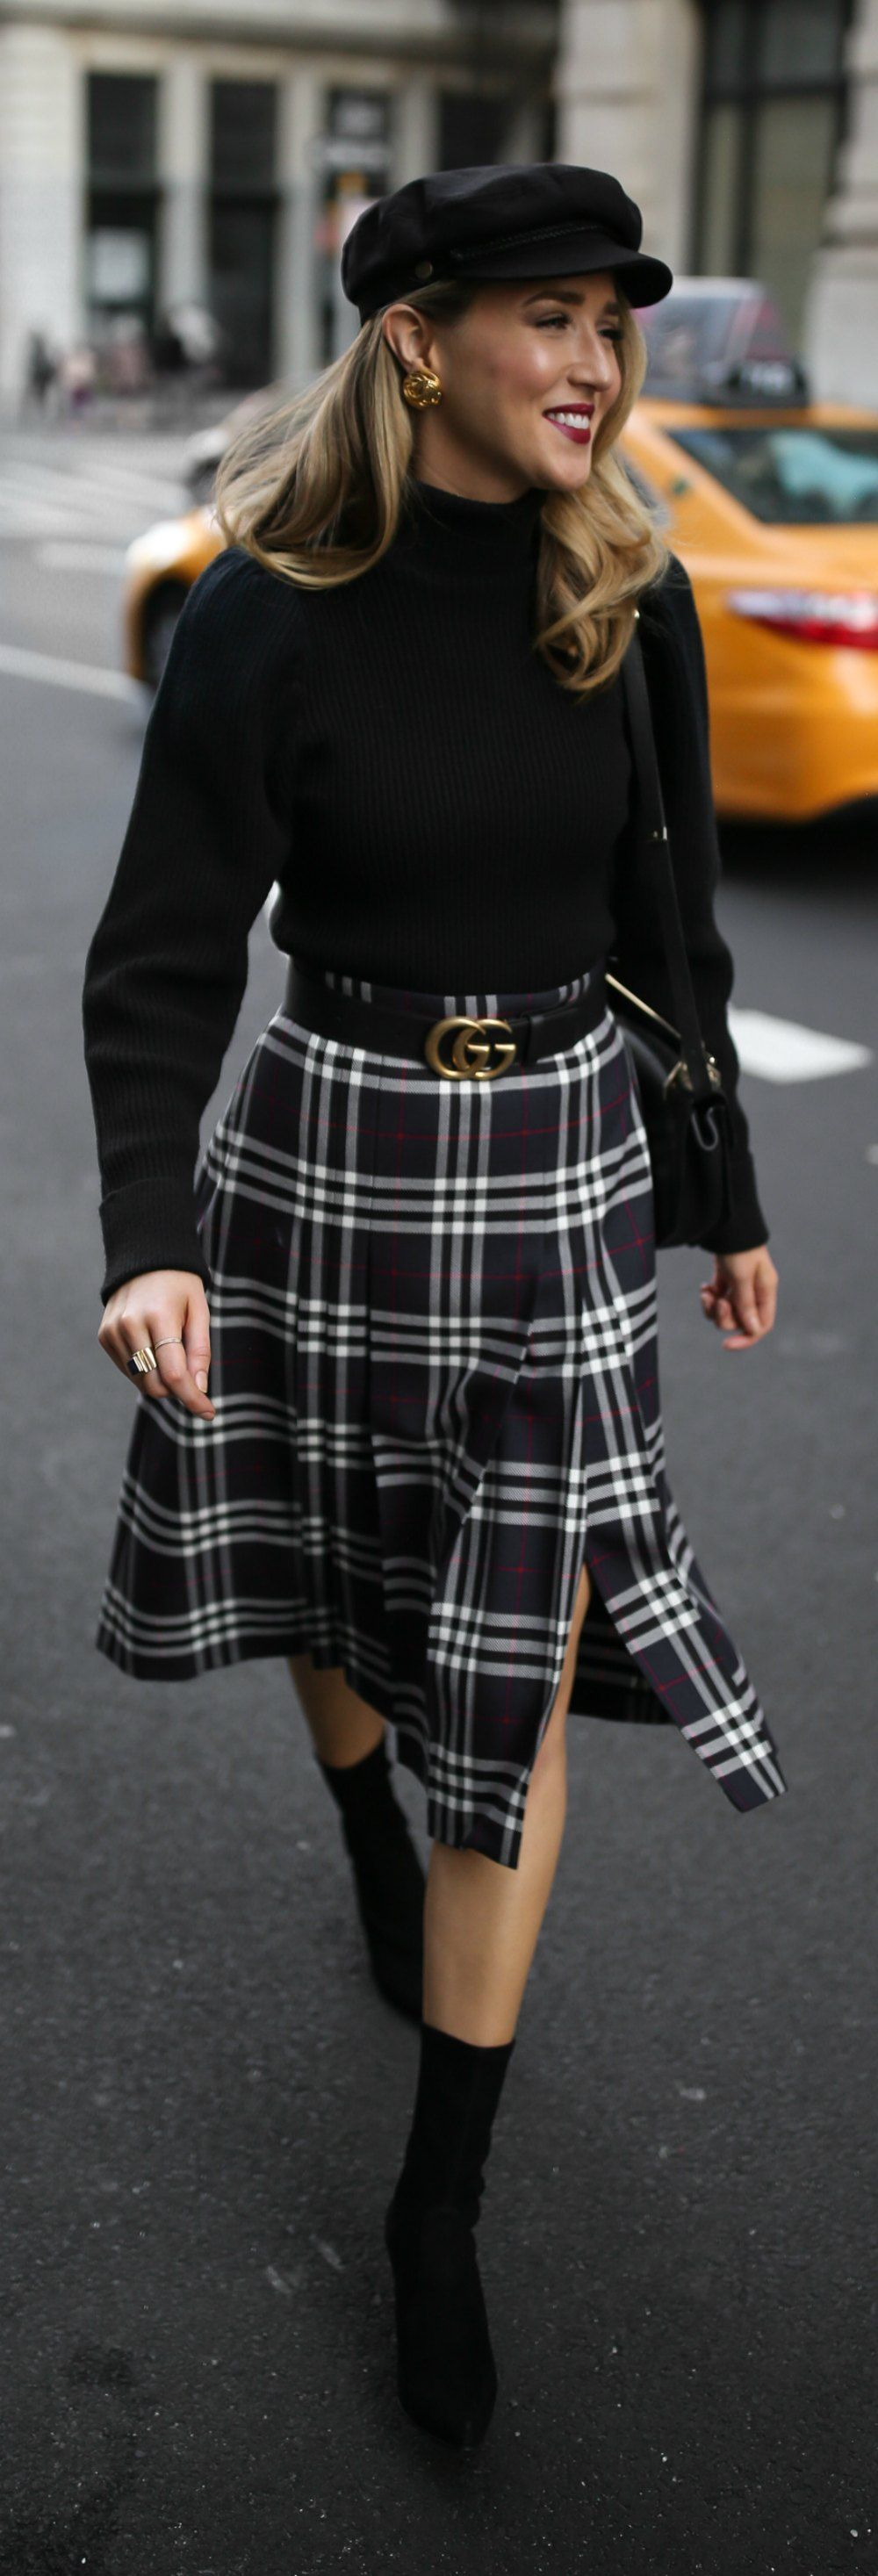 ff44d9470870 Classic Fall Style // Pleated plaid midi skirt, black puffed-shoulder  turtleneck, black sock boots, baker boy cap and black leather waist belt { Burberry, ...